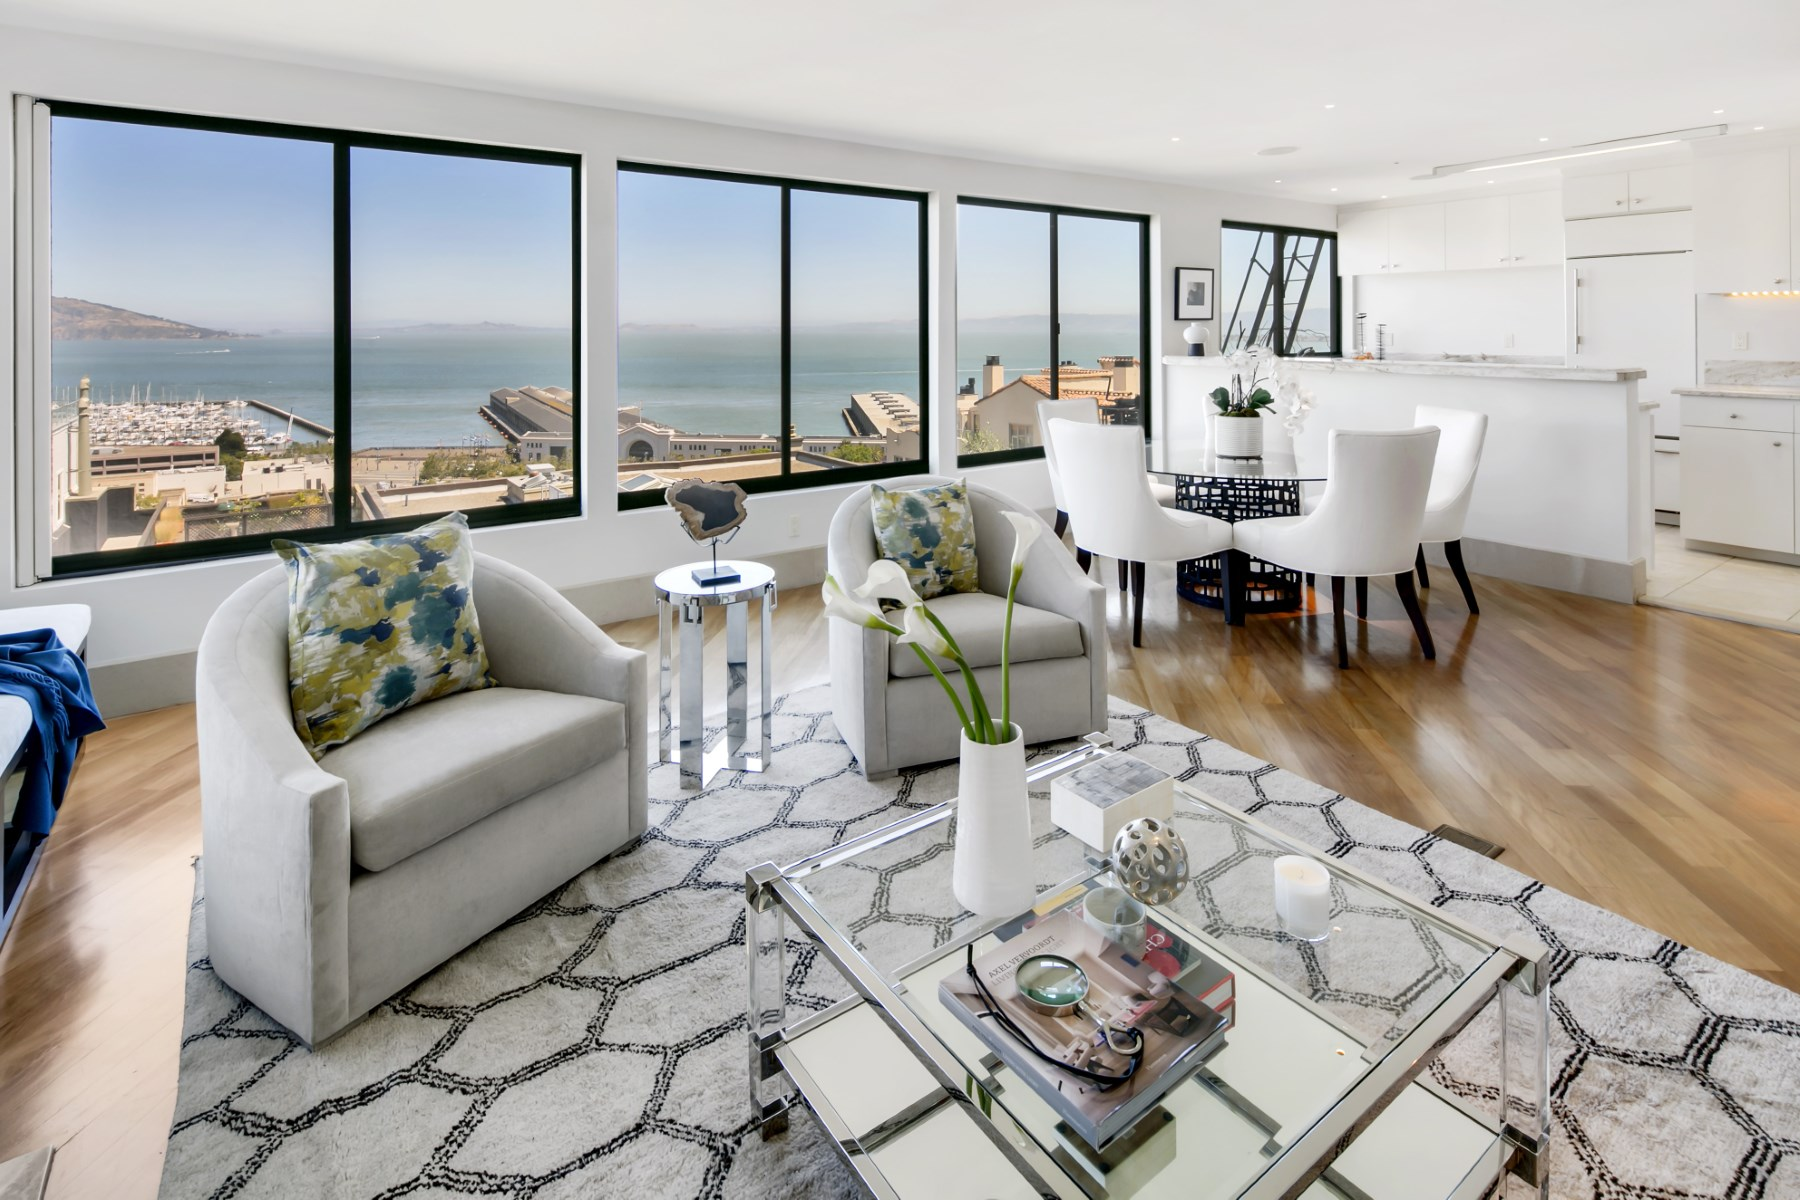 Condominium for Sale at Spacious Two-Level Home 1725 Kearny St Apt 1 Telegraph Hill, San Francisco, California, 94133 United States